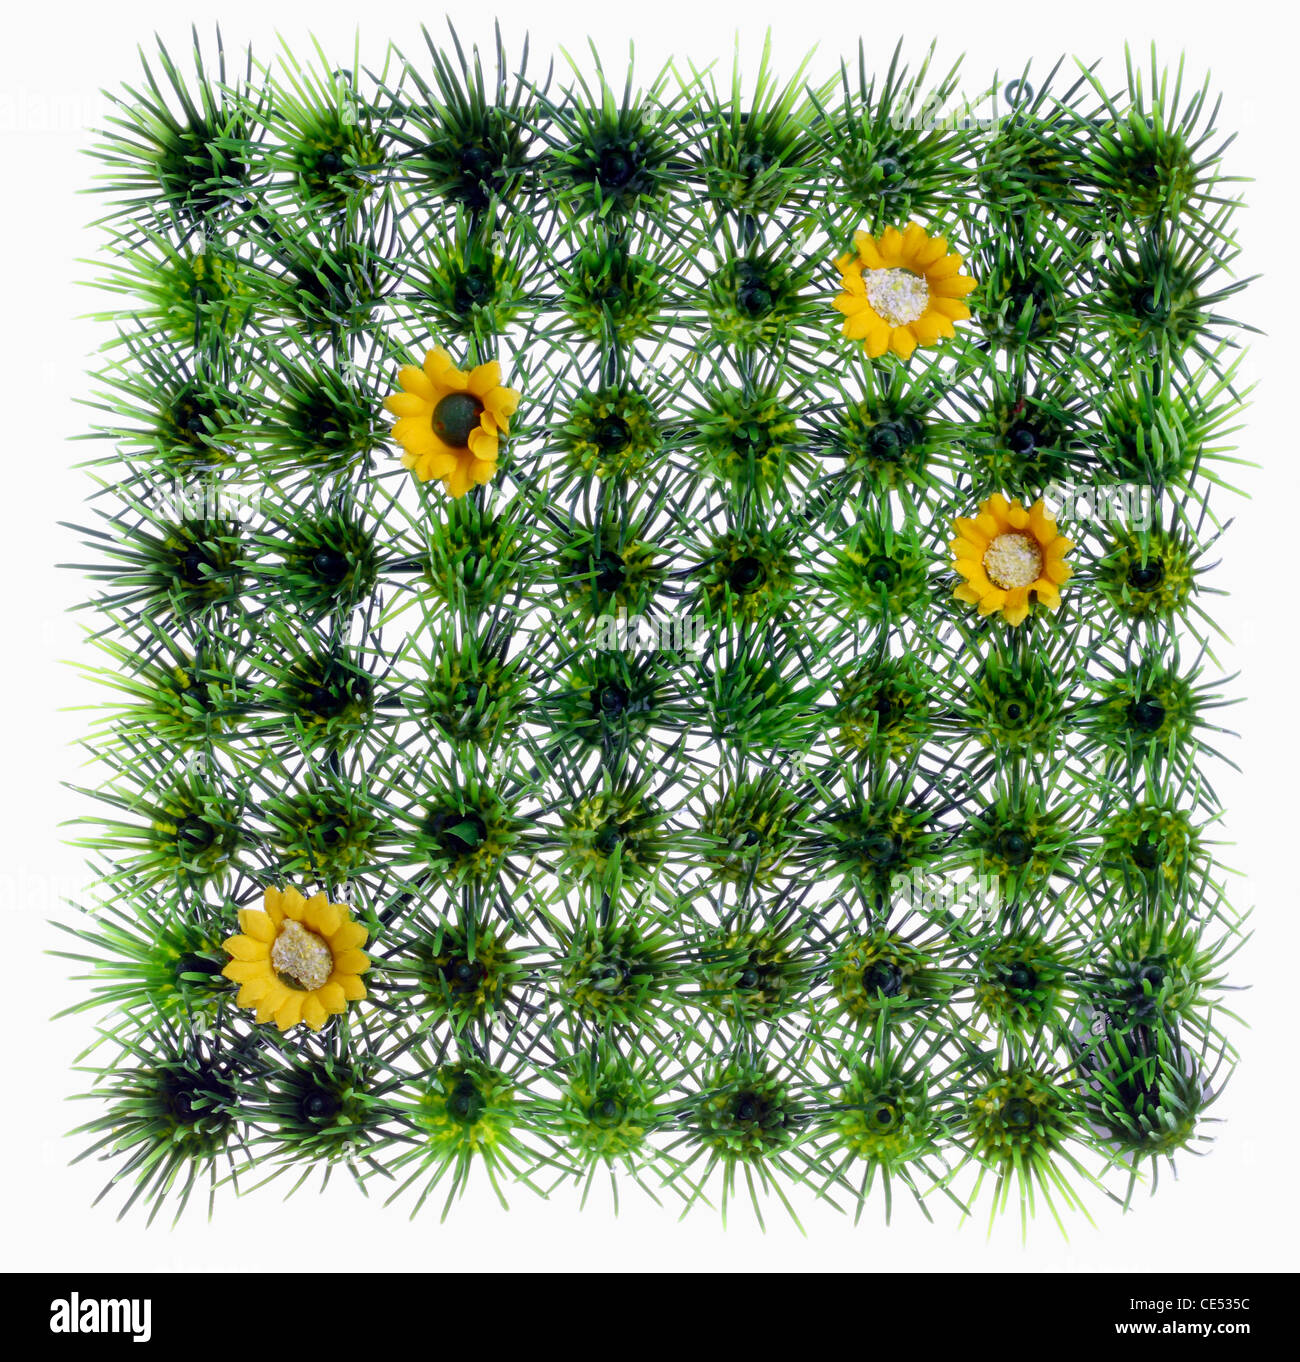 Quadratic, artificial grass, meadow, with yellow plastic flowers. Decoration. Stock Photo